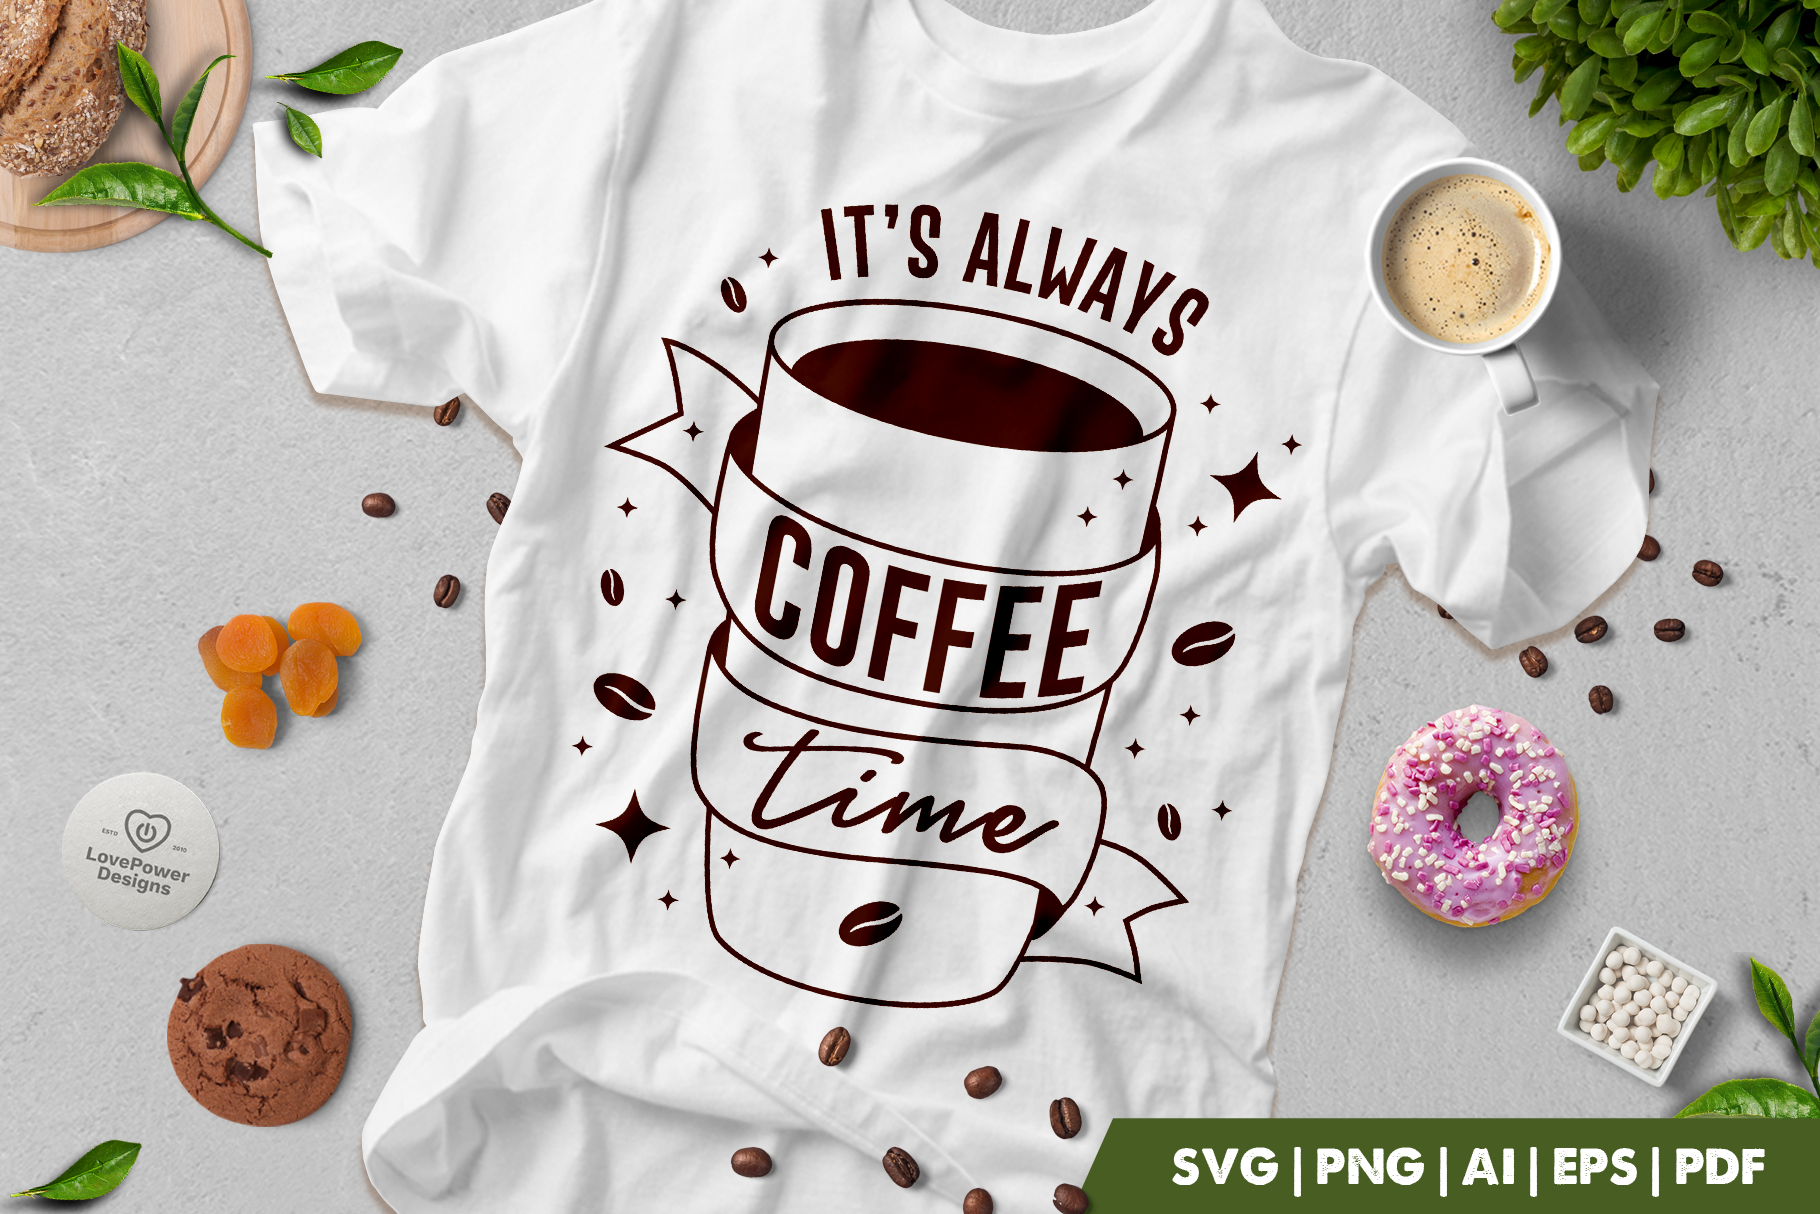 Coffee SVG | It's Always Coffee Time SVG | Coffee Quote SVG